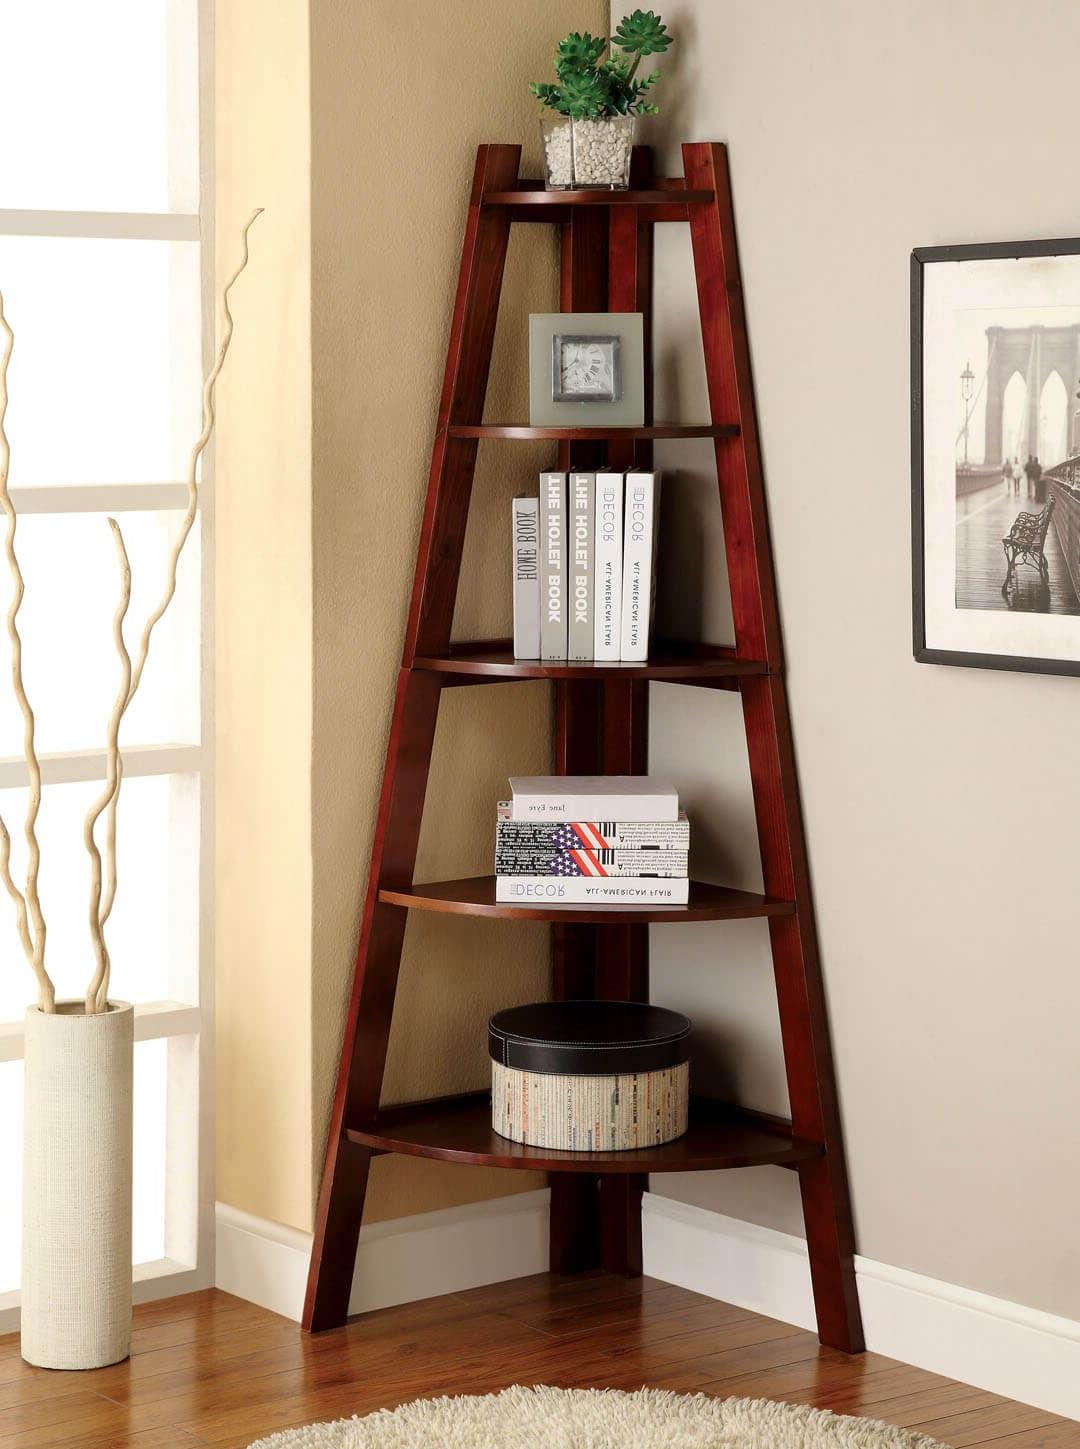 38 Handy Corner Storage Ideen, Mit Denen Sie Ihren Platz Intended For Well Known Tisha Corner Bookcases (Gallery 9 of 20)